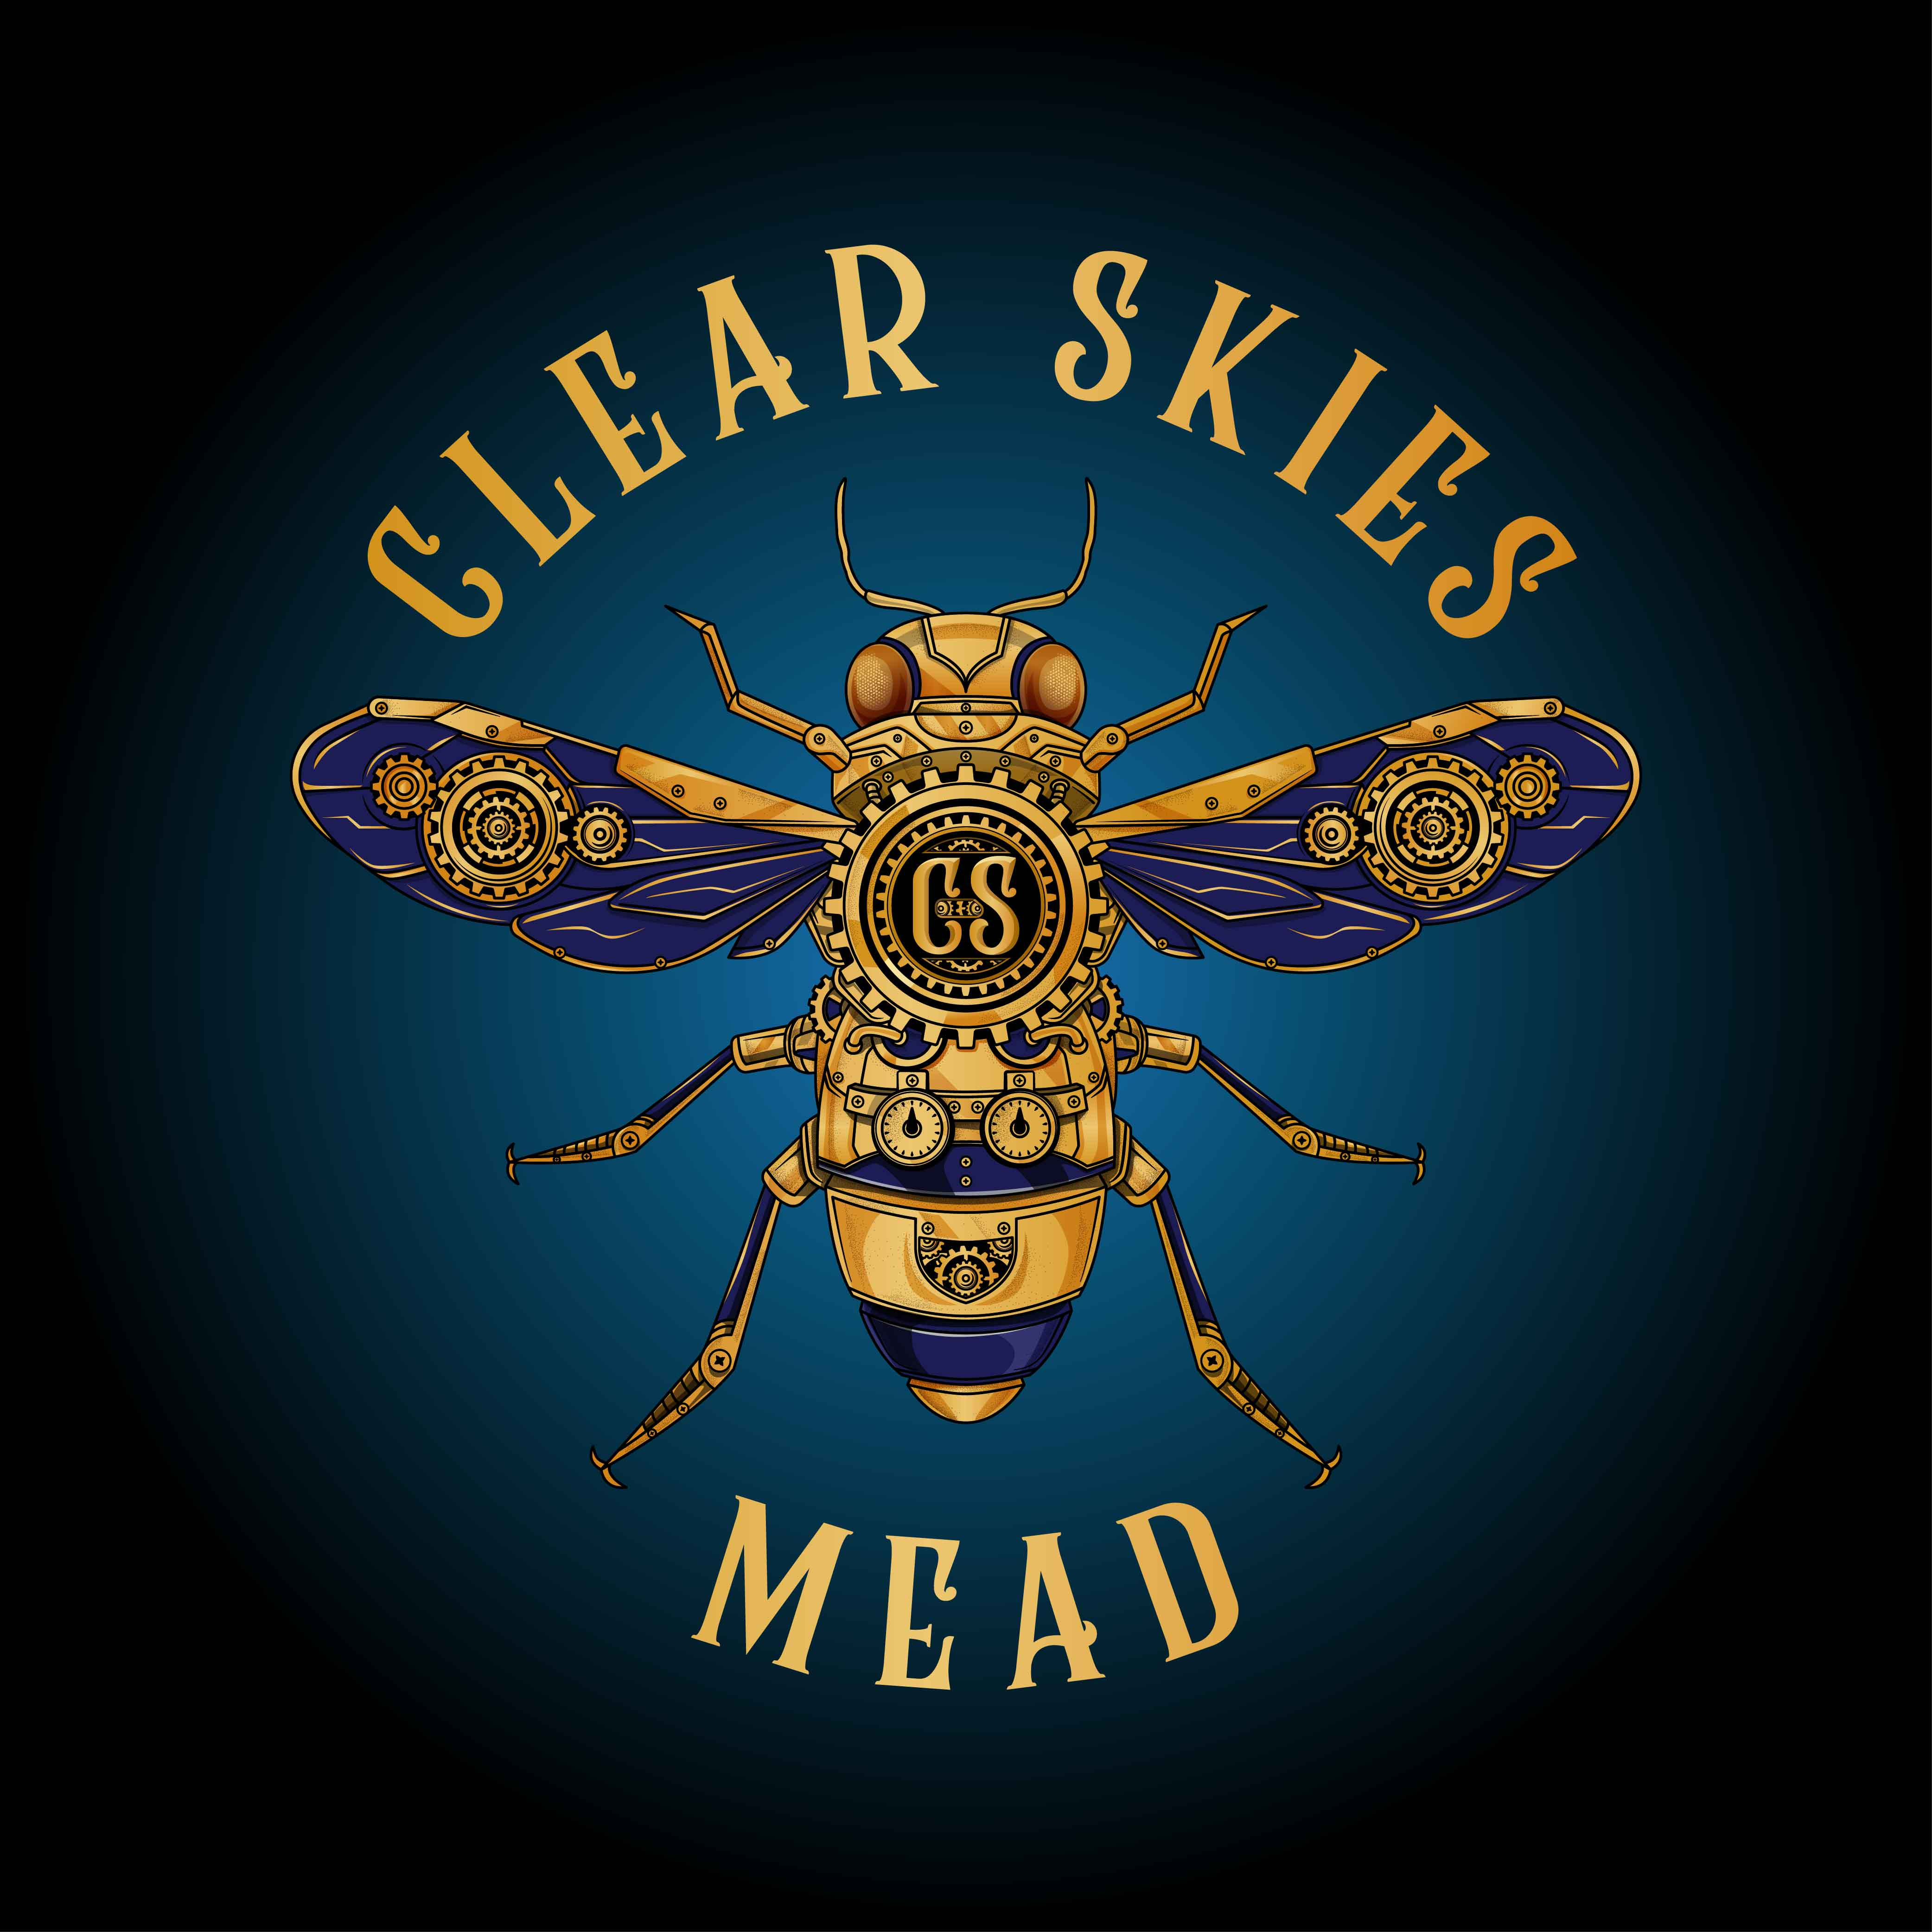 Clear Skies Meadery